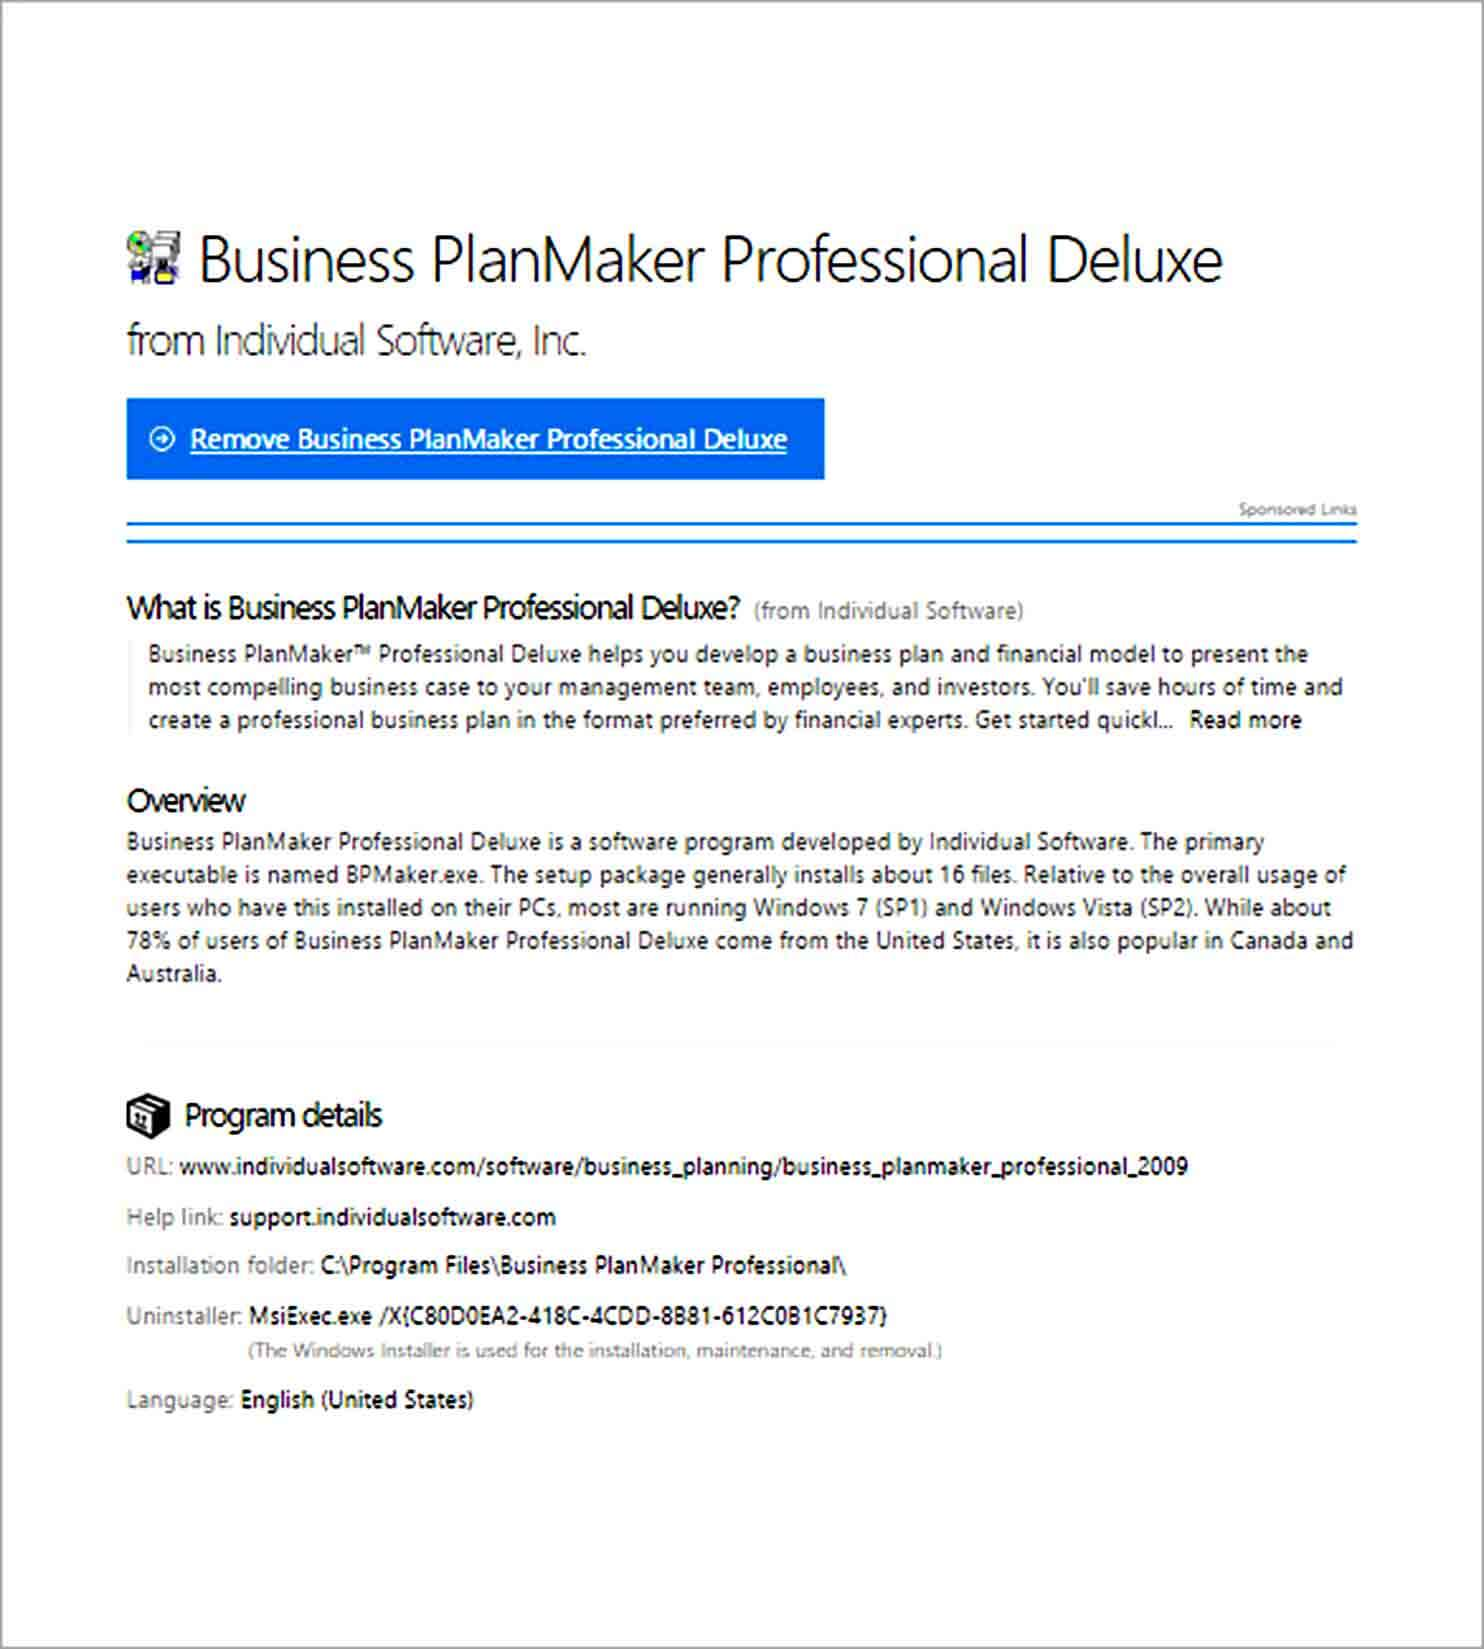 Templates Business PlanMaker Professional Deluxe So